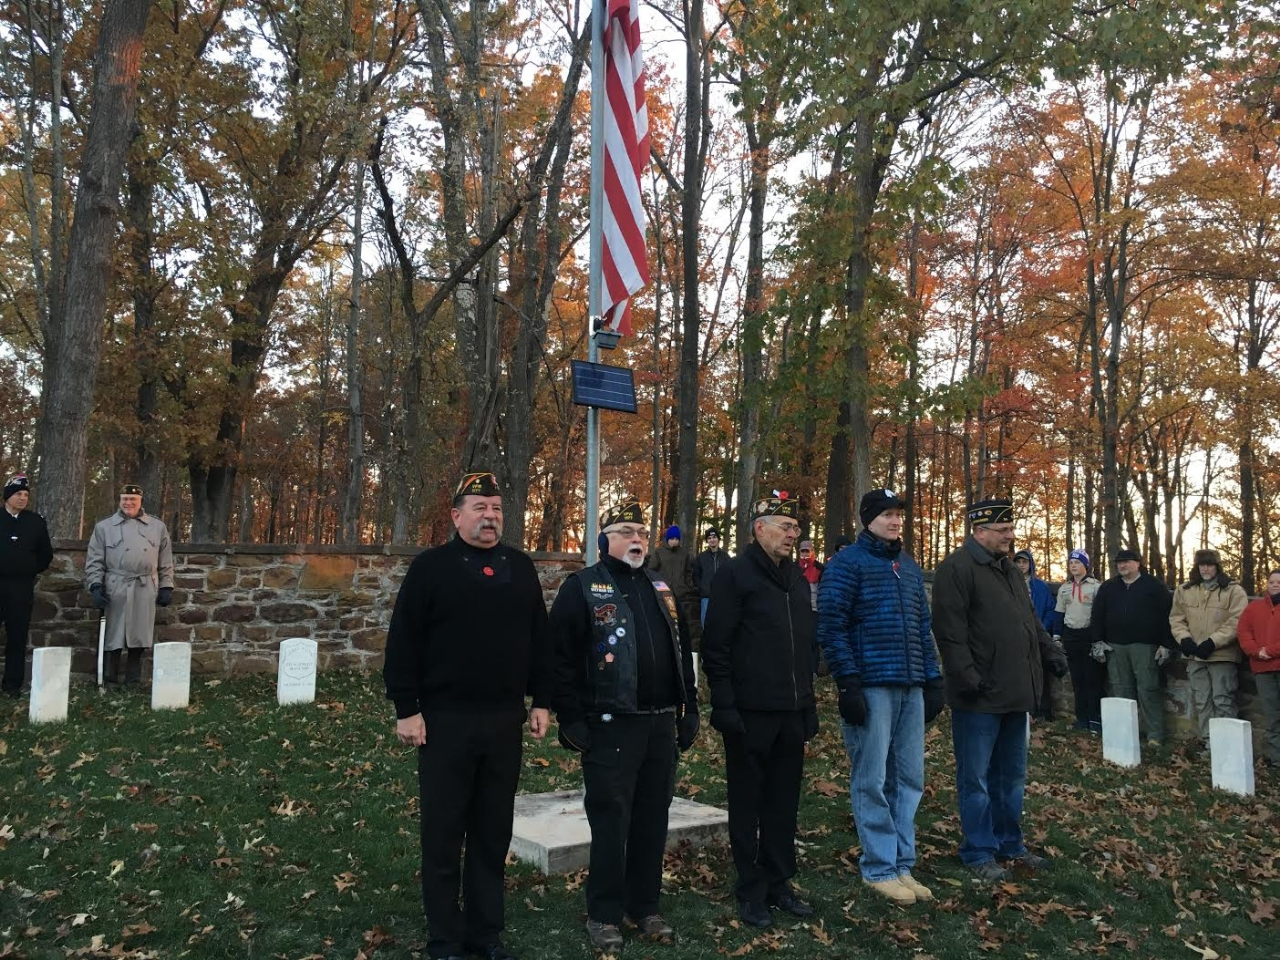 At the Veterans Day Sunrise Ceremony at Balls Bluff.